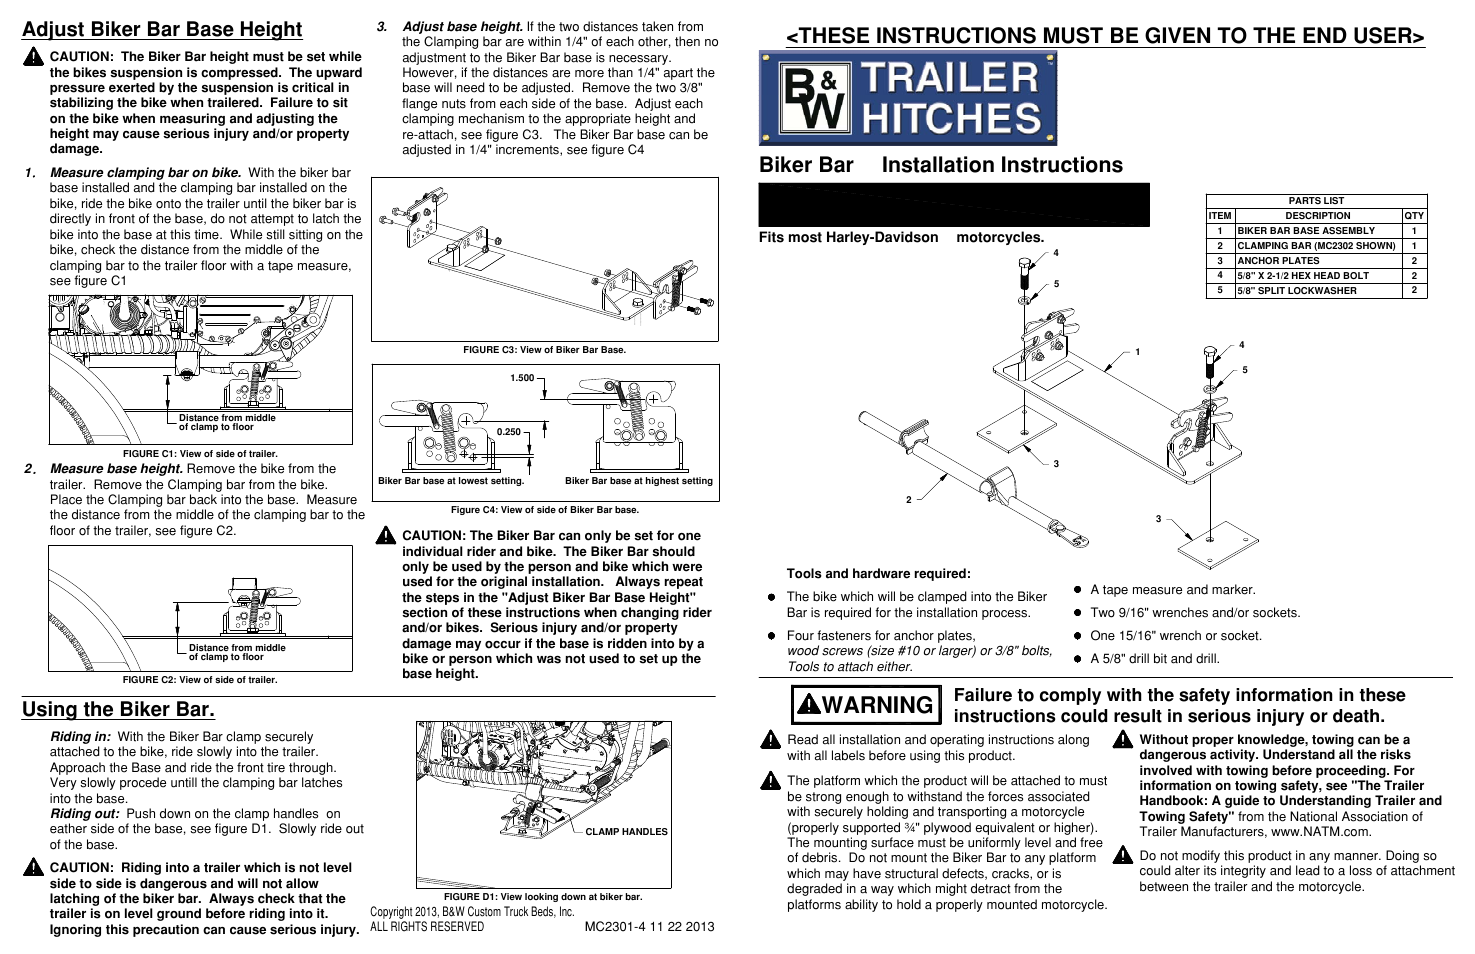 B&W Trailer Hitches MC2301 User Manual | 4 pages | Also for: MC2304,  MC2303, MC2302